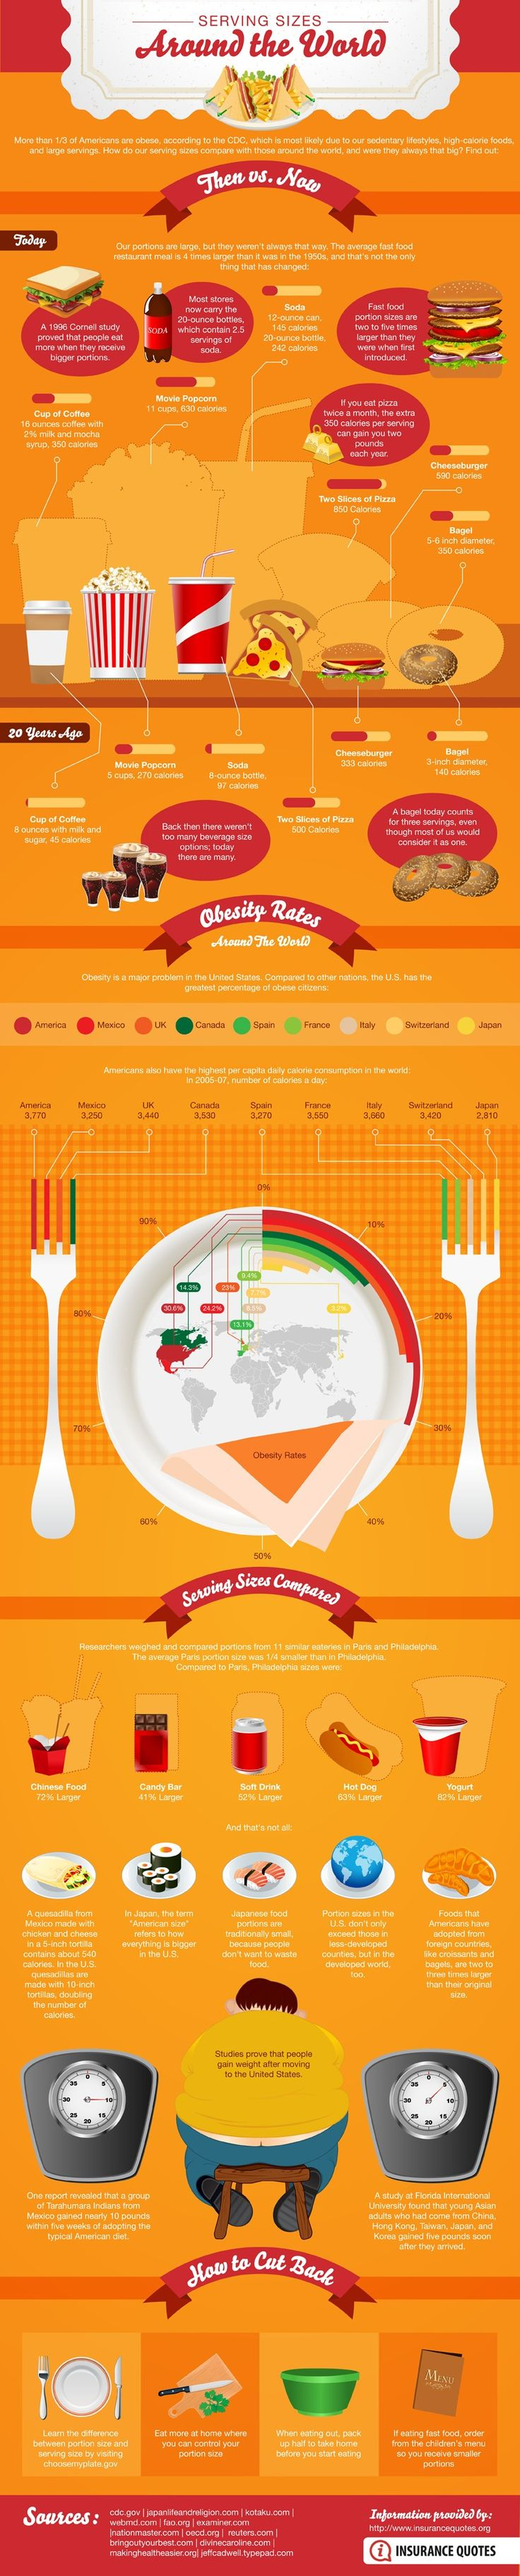 Serving sizes around the world [Infographic]